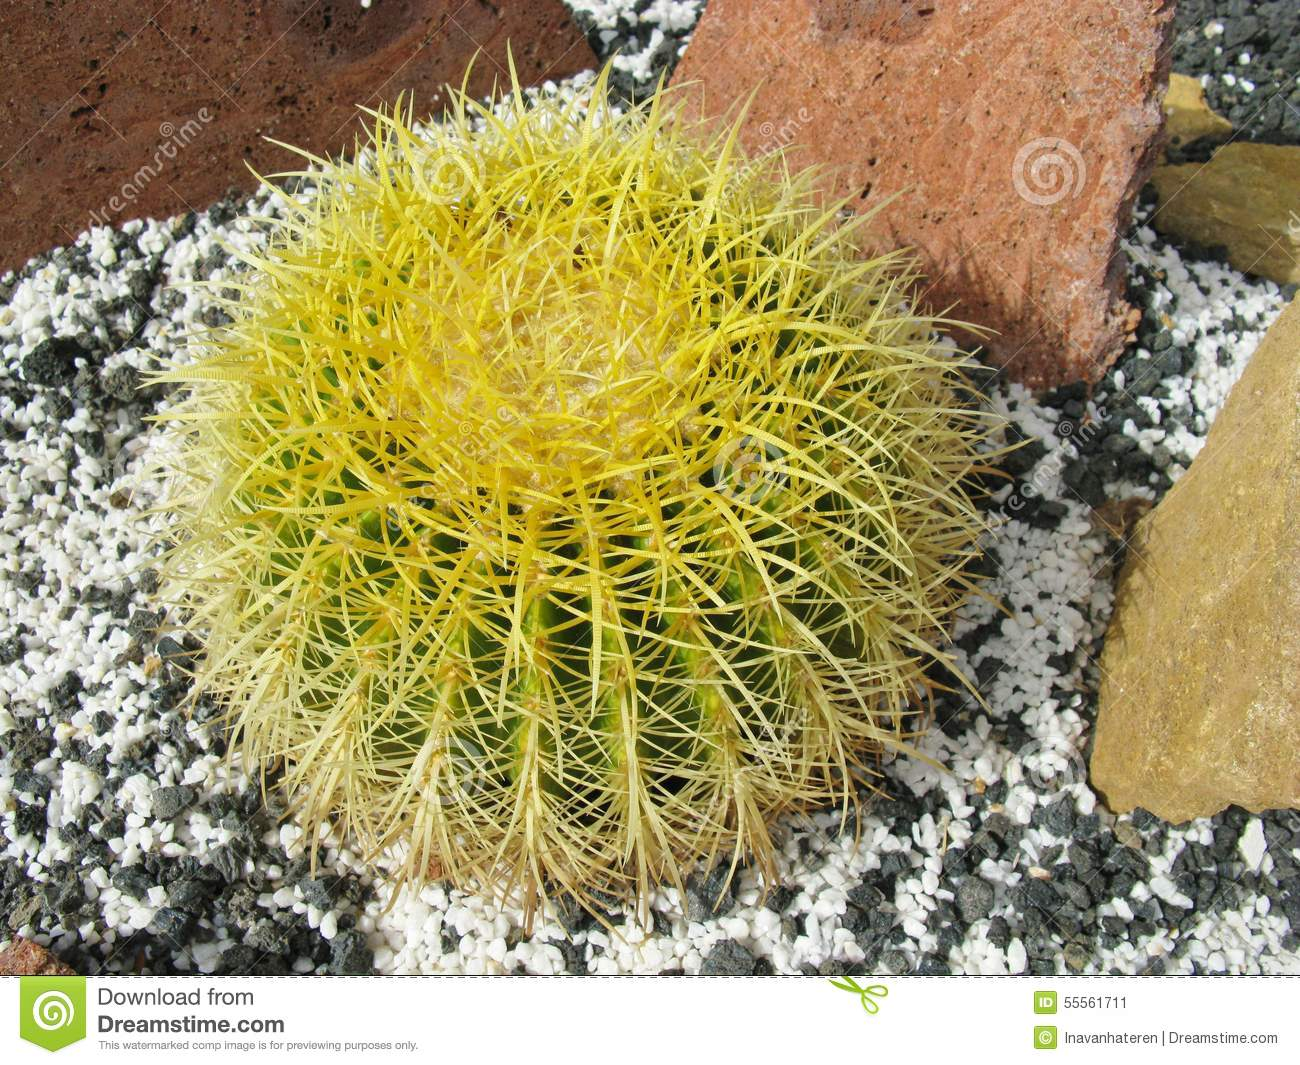 The Golden ball or barrel cactus